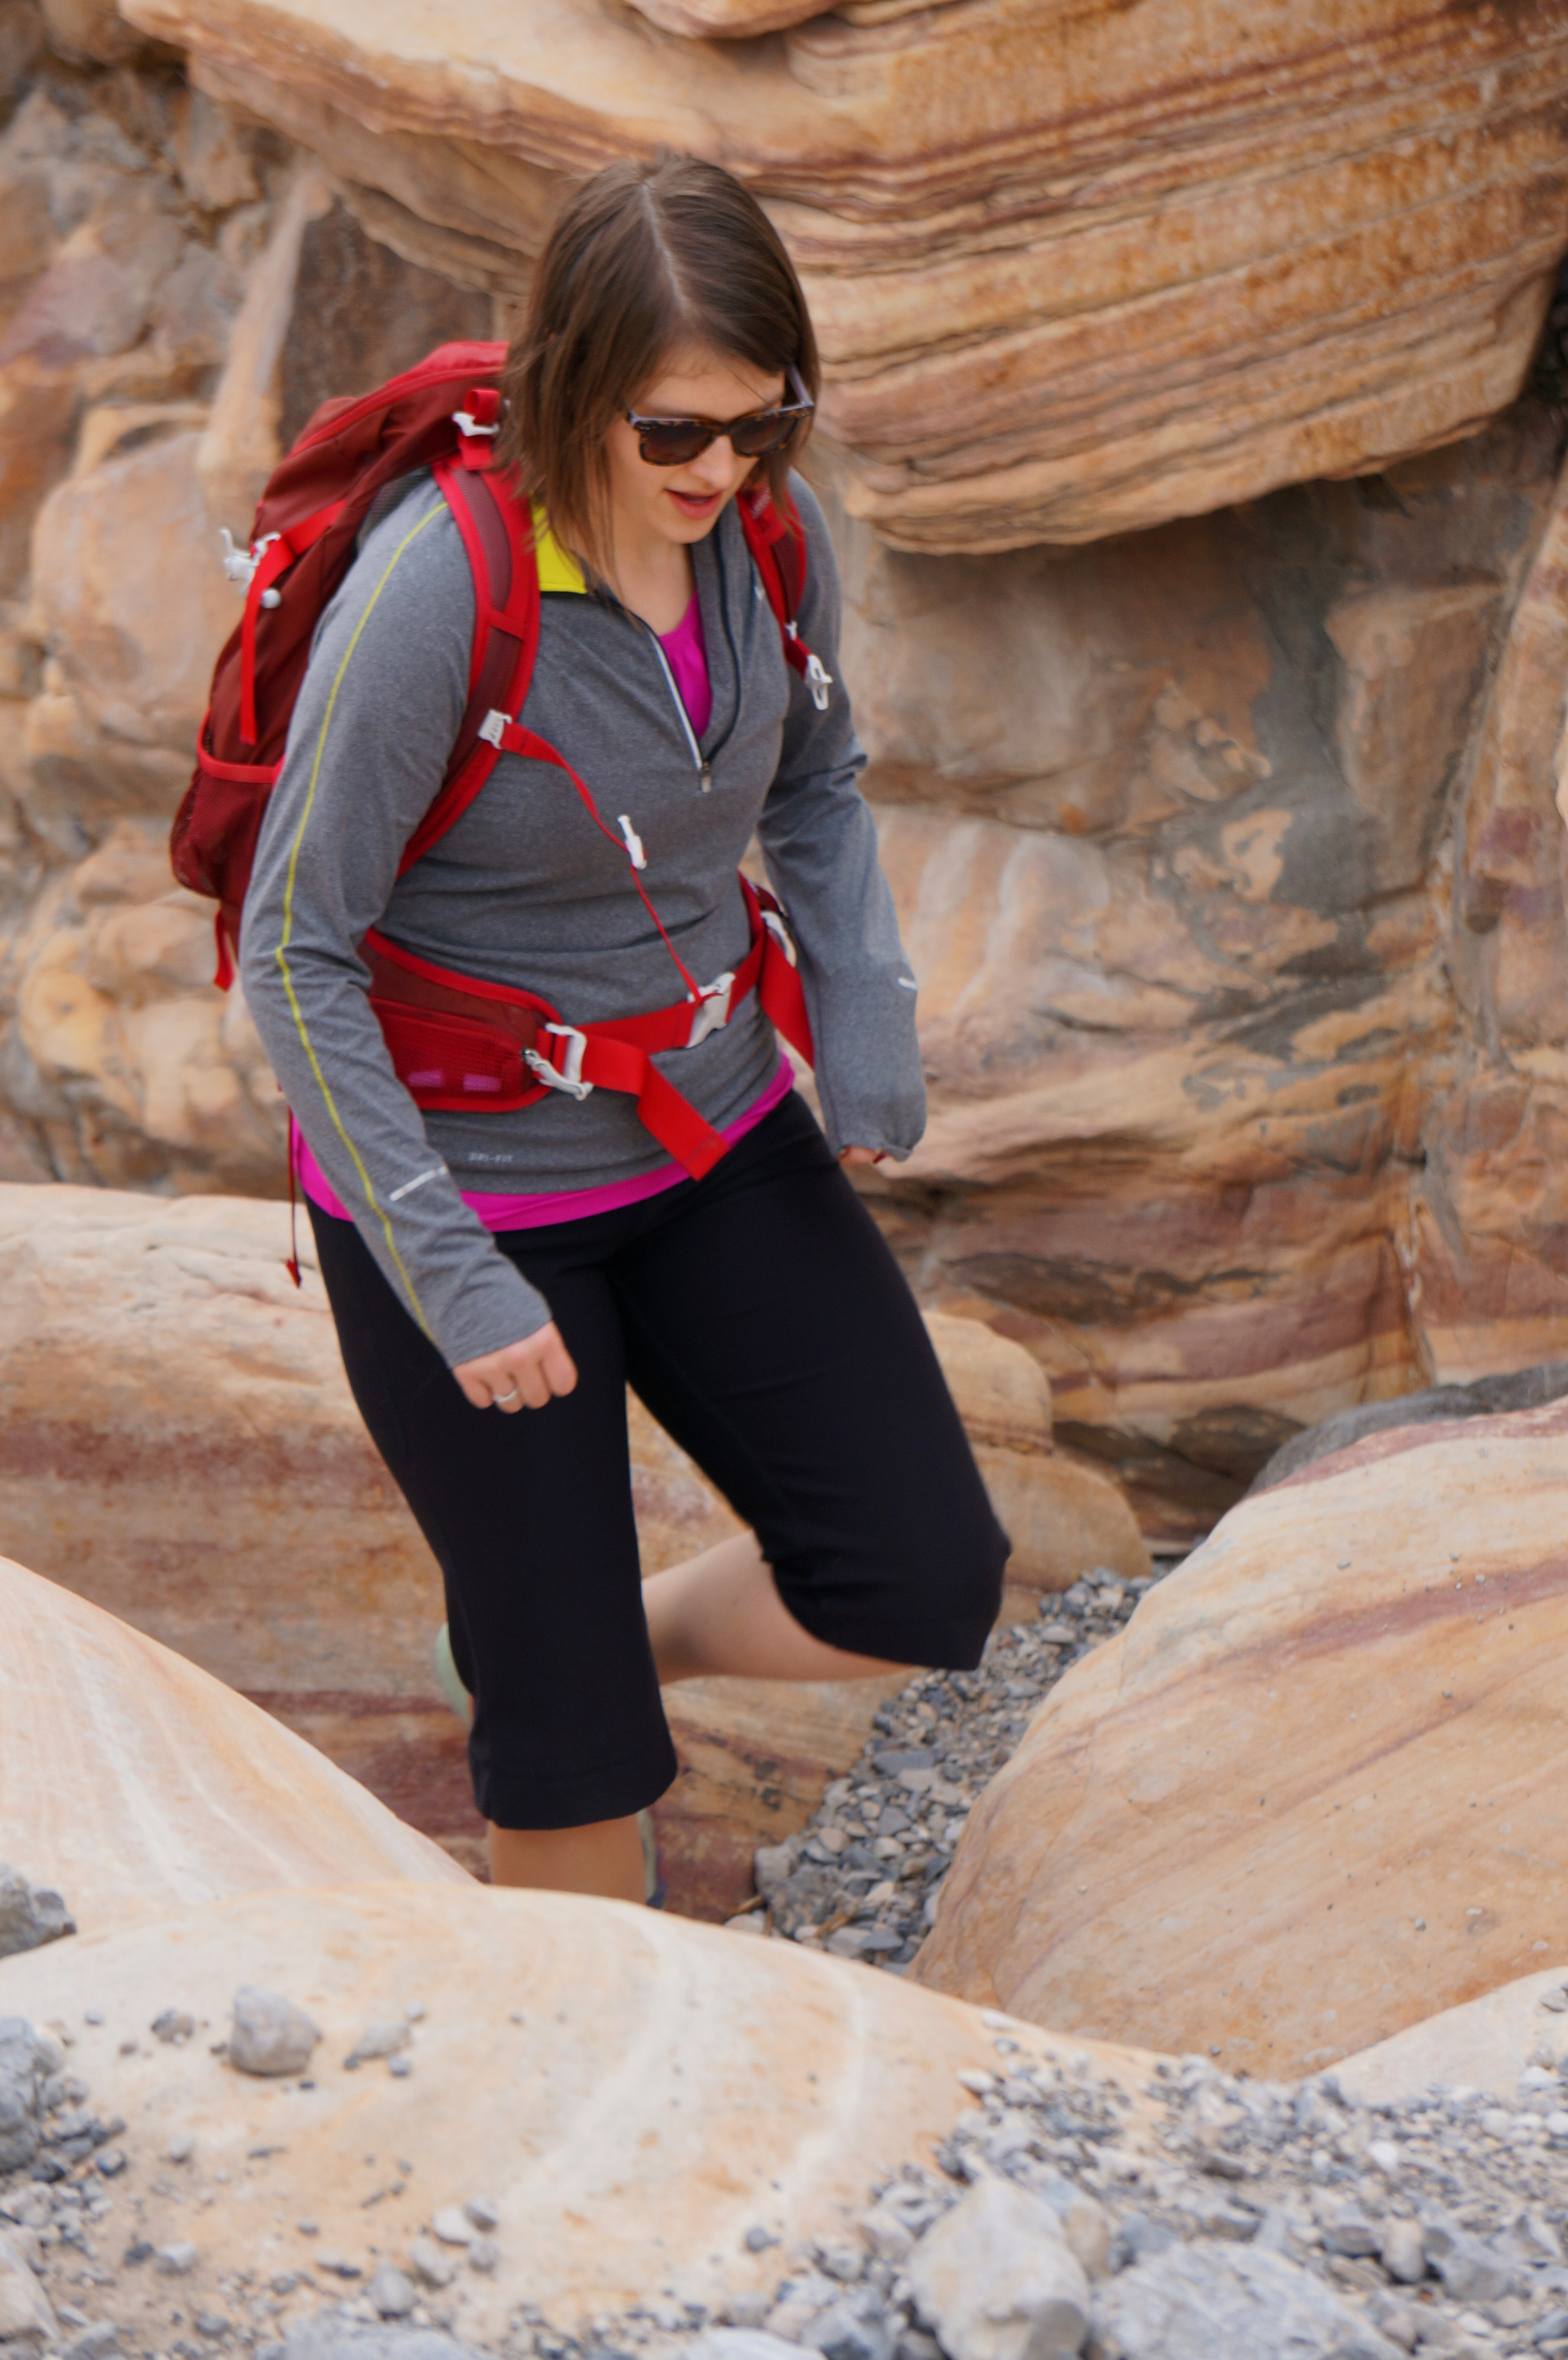 Laura hiking in Red Rock Canyon. (I think she looks like an REI model here!)